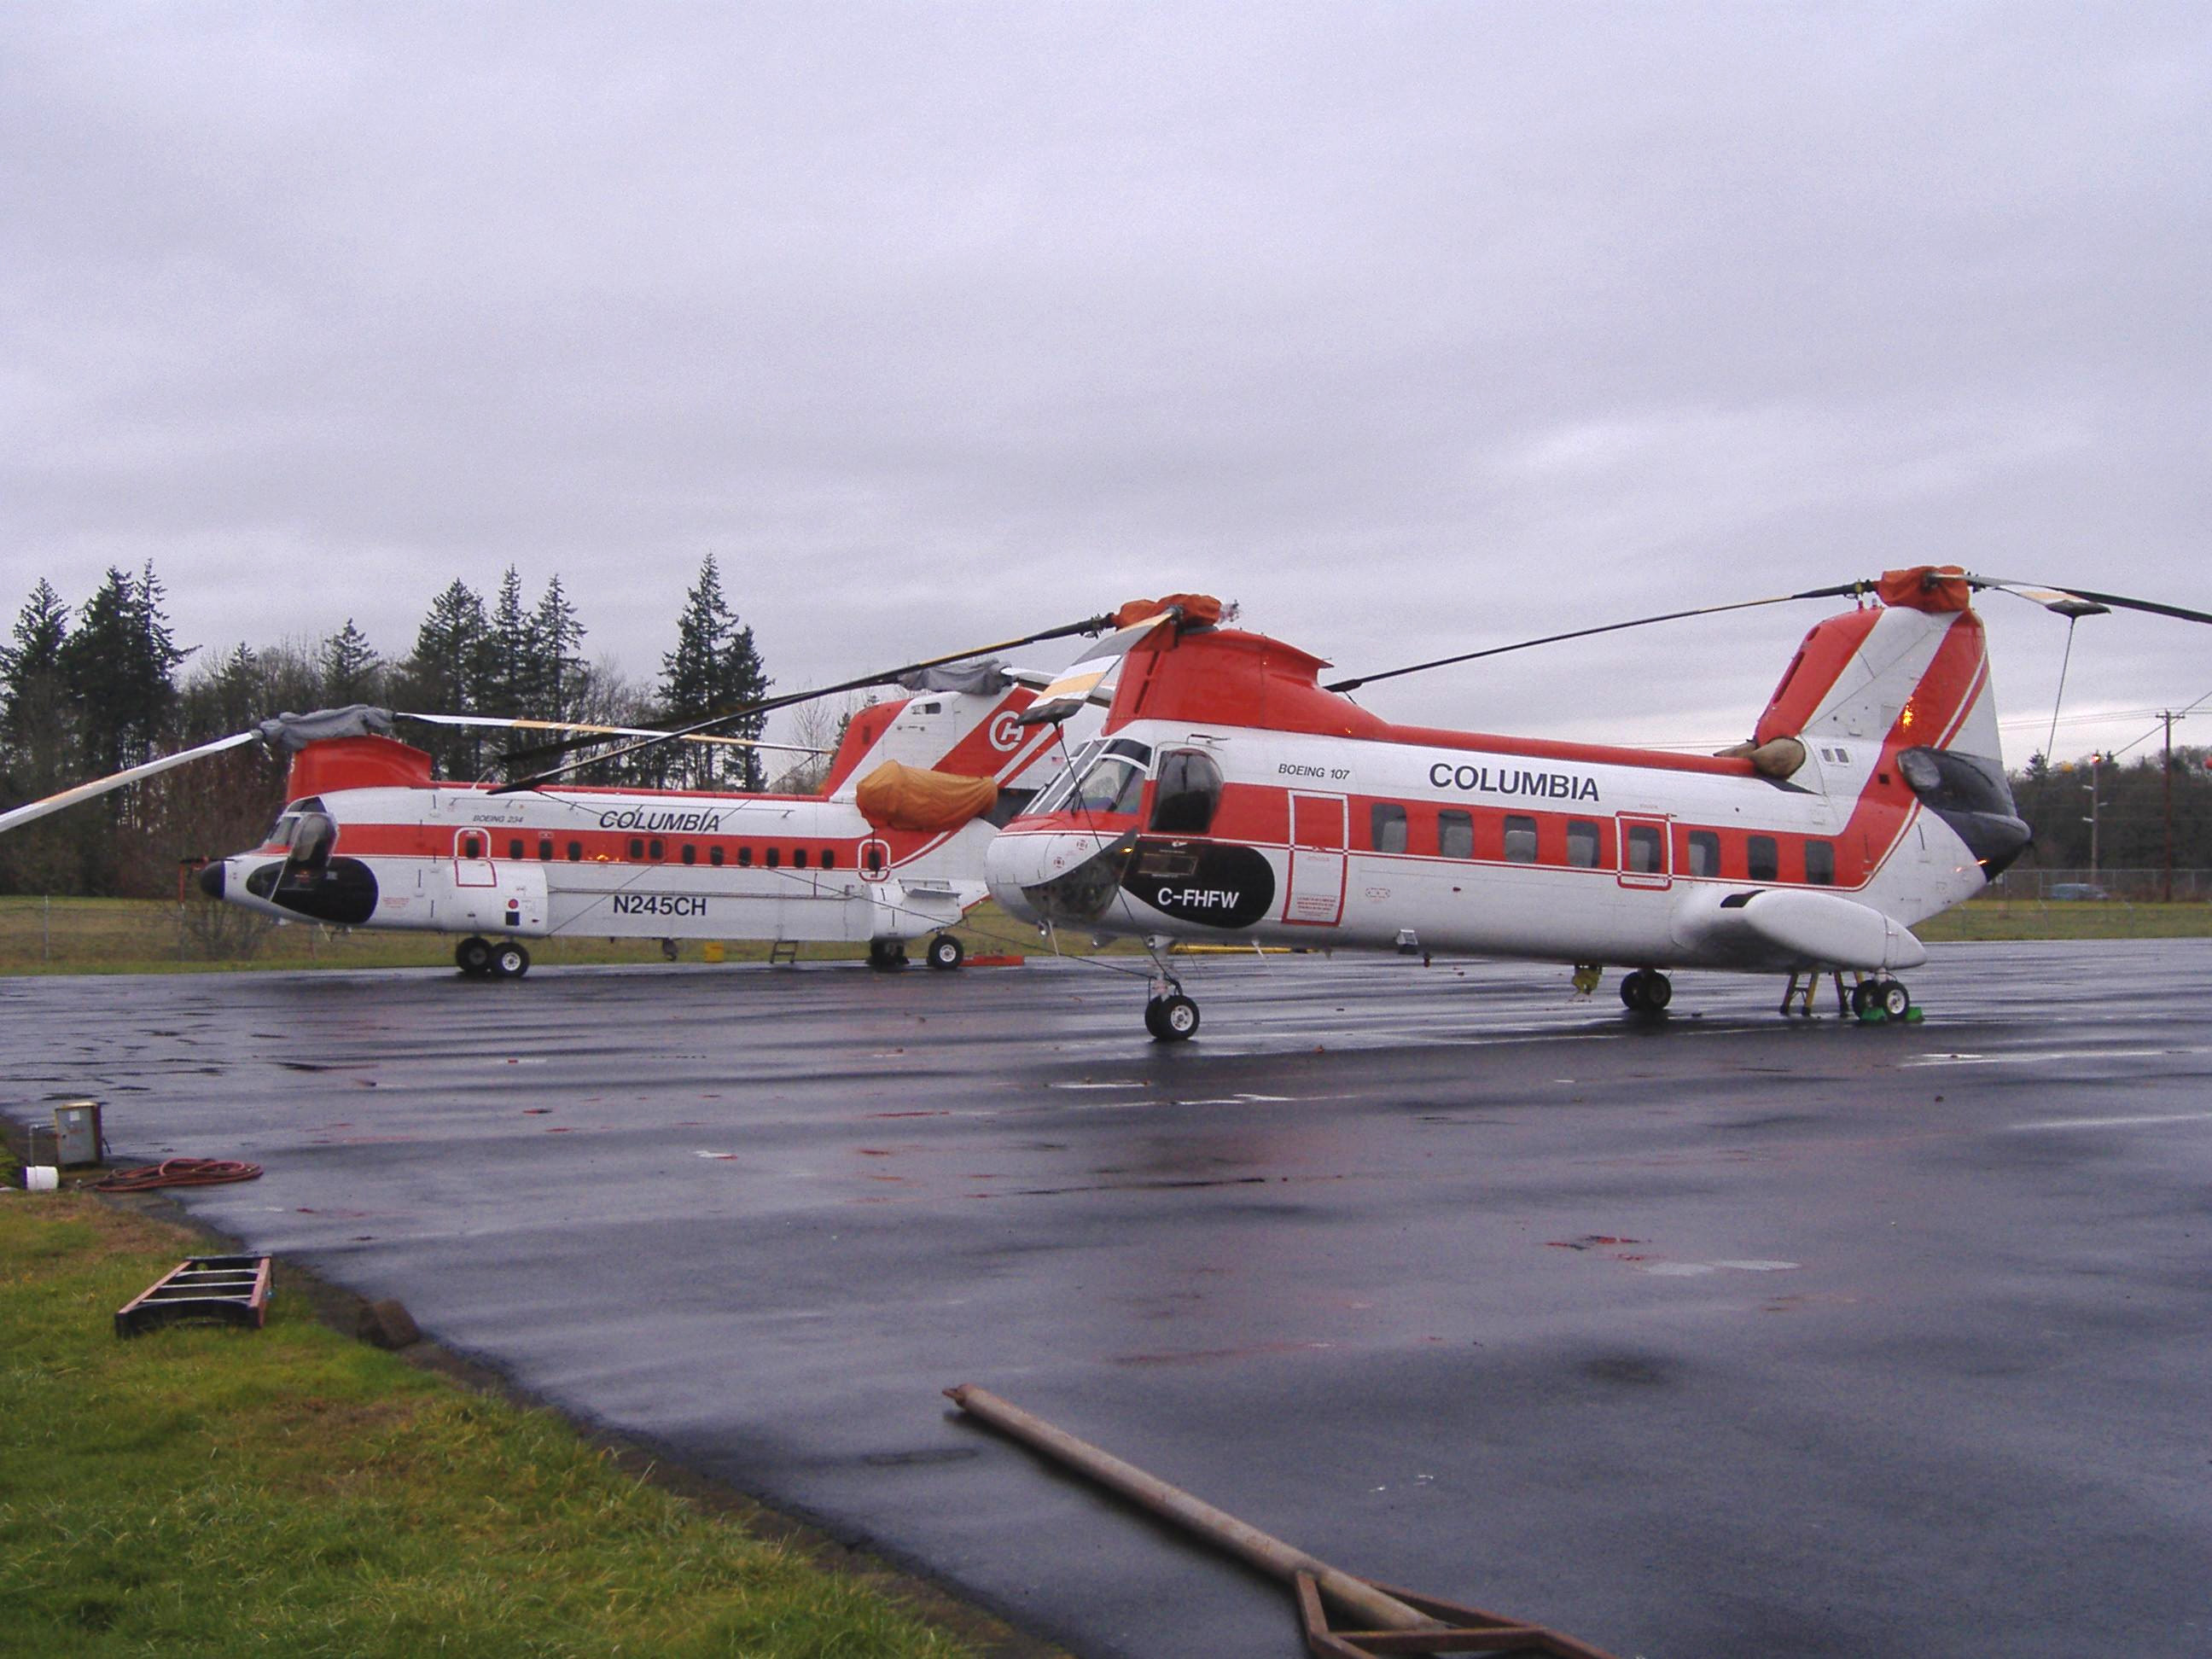 Columbia Helicopters Inc Boeing Vertol 107 C-FHFW and Boeing 234 N245CH rest on the company pad in Aurora, Oregon.